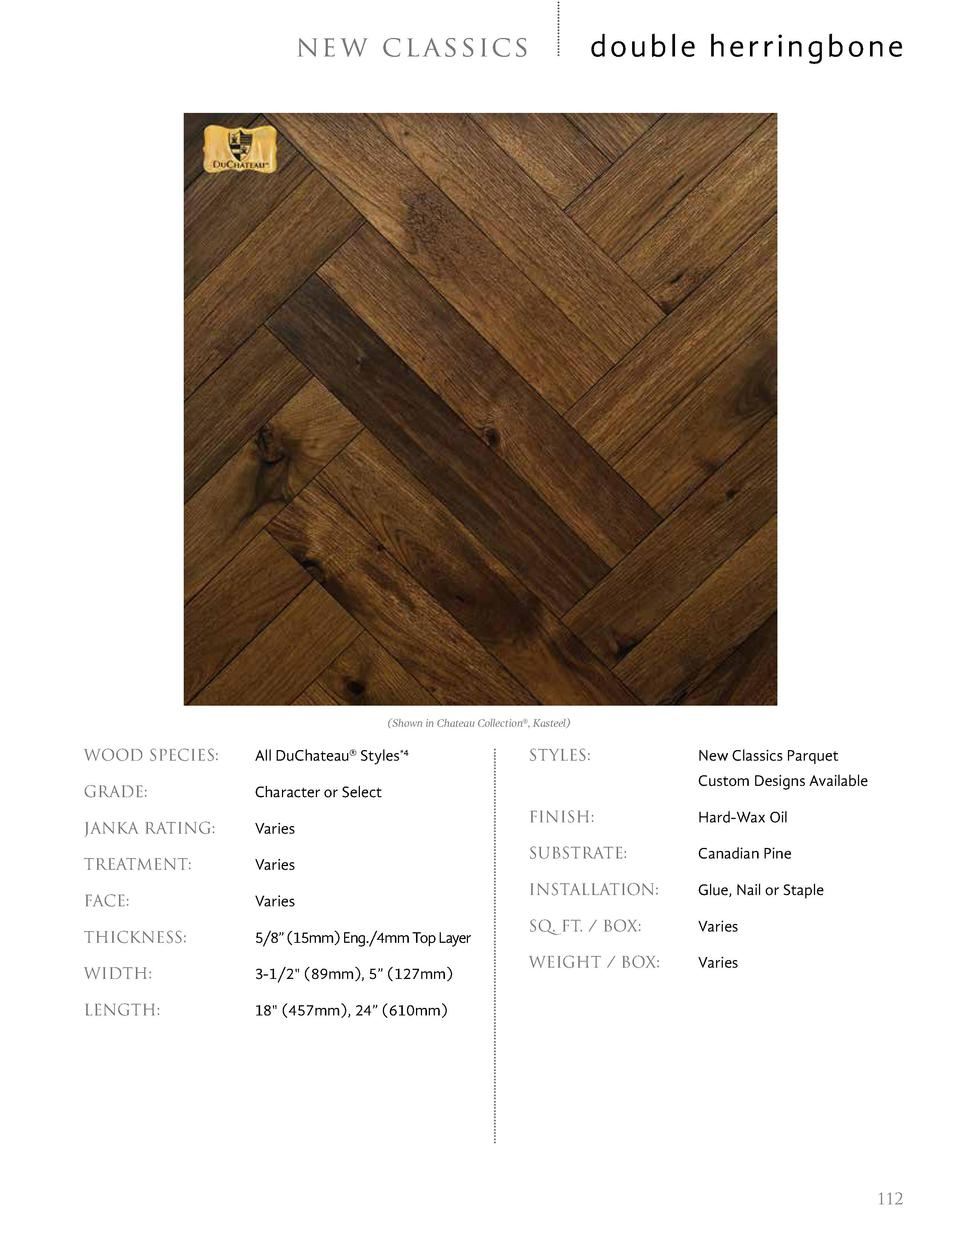 ne w c l a s sic s  double herringbone   Shown in Chateau Collection  , Kasteel   WOOD SPECIES    All DuChateau   Styles 4...